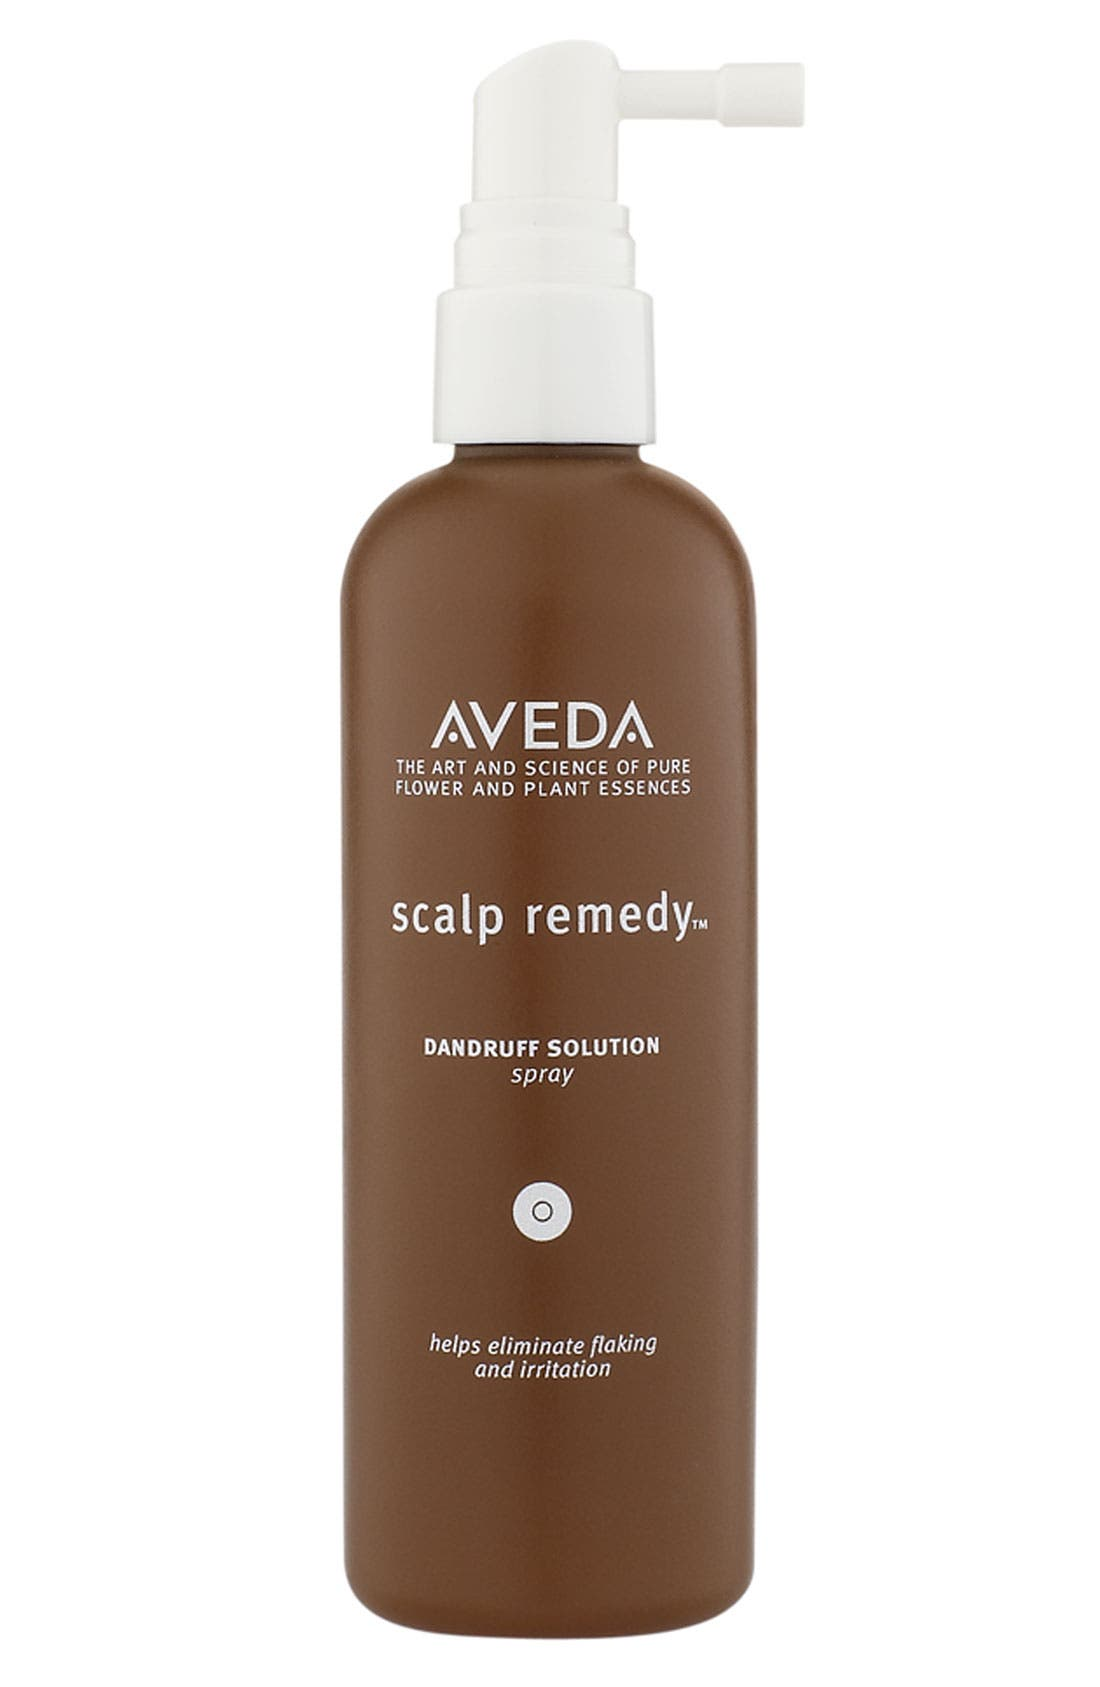 Aveda 'scalp remedy™' Dandruff Solution